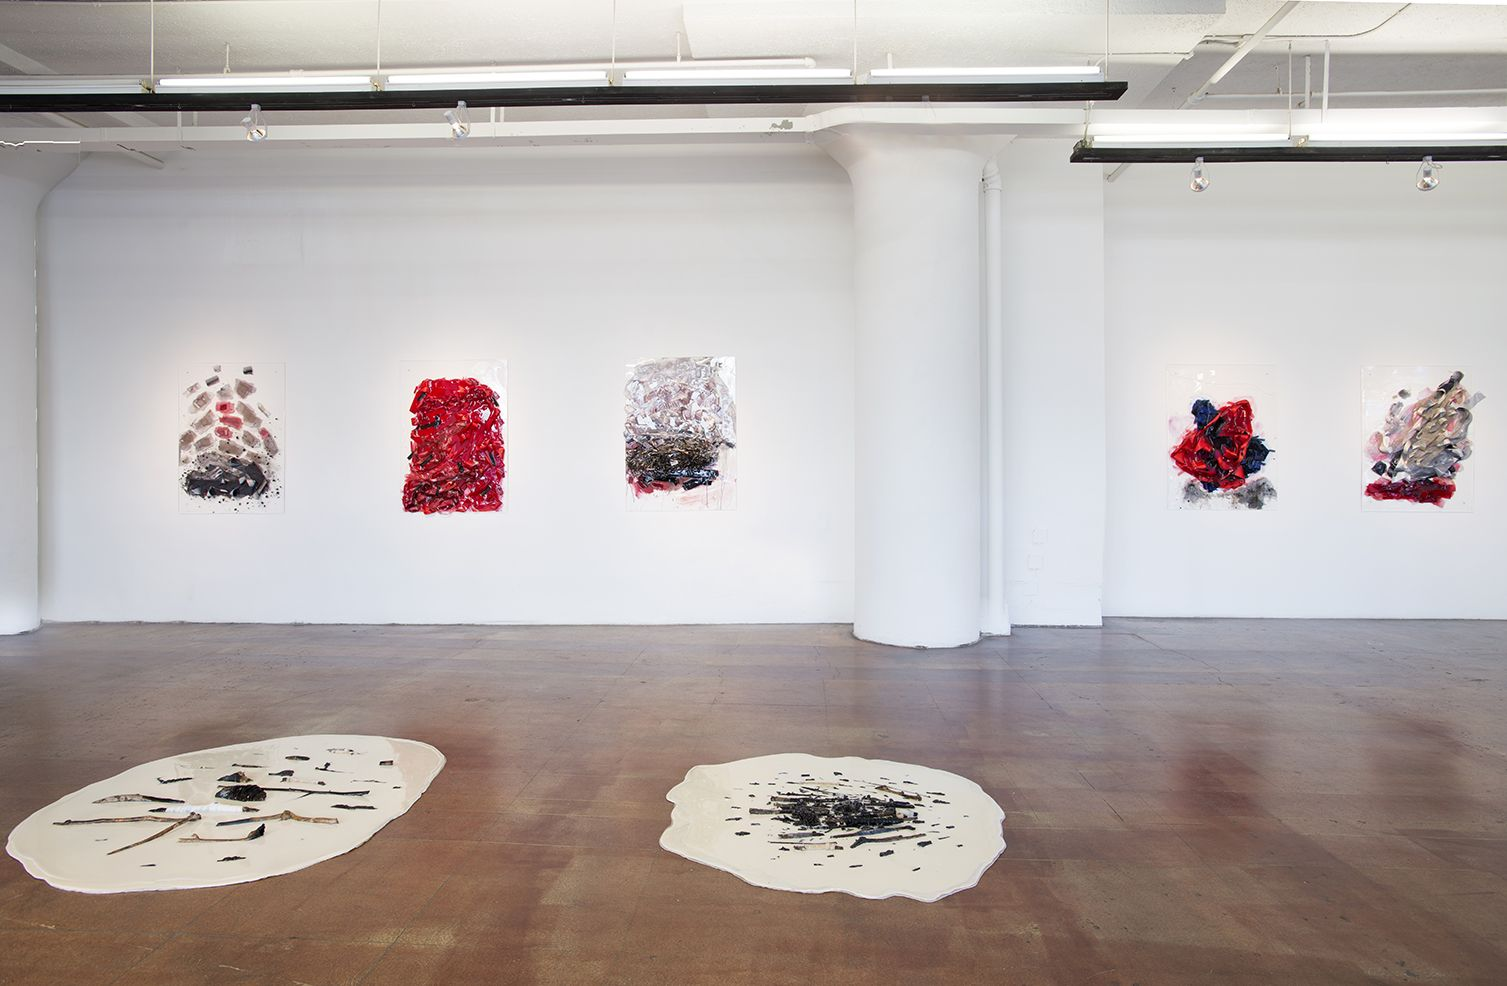 Installation View, Vadis Turner, Bells and Burn Piles, Geary Contemporary, 2016